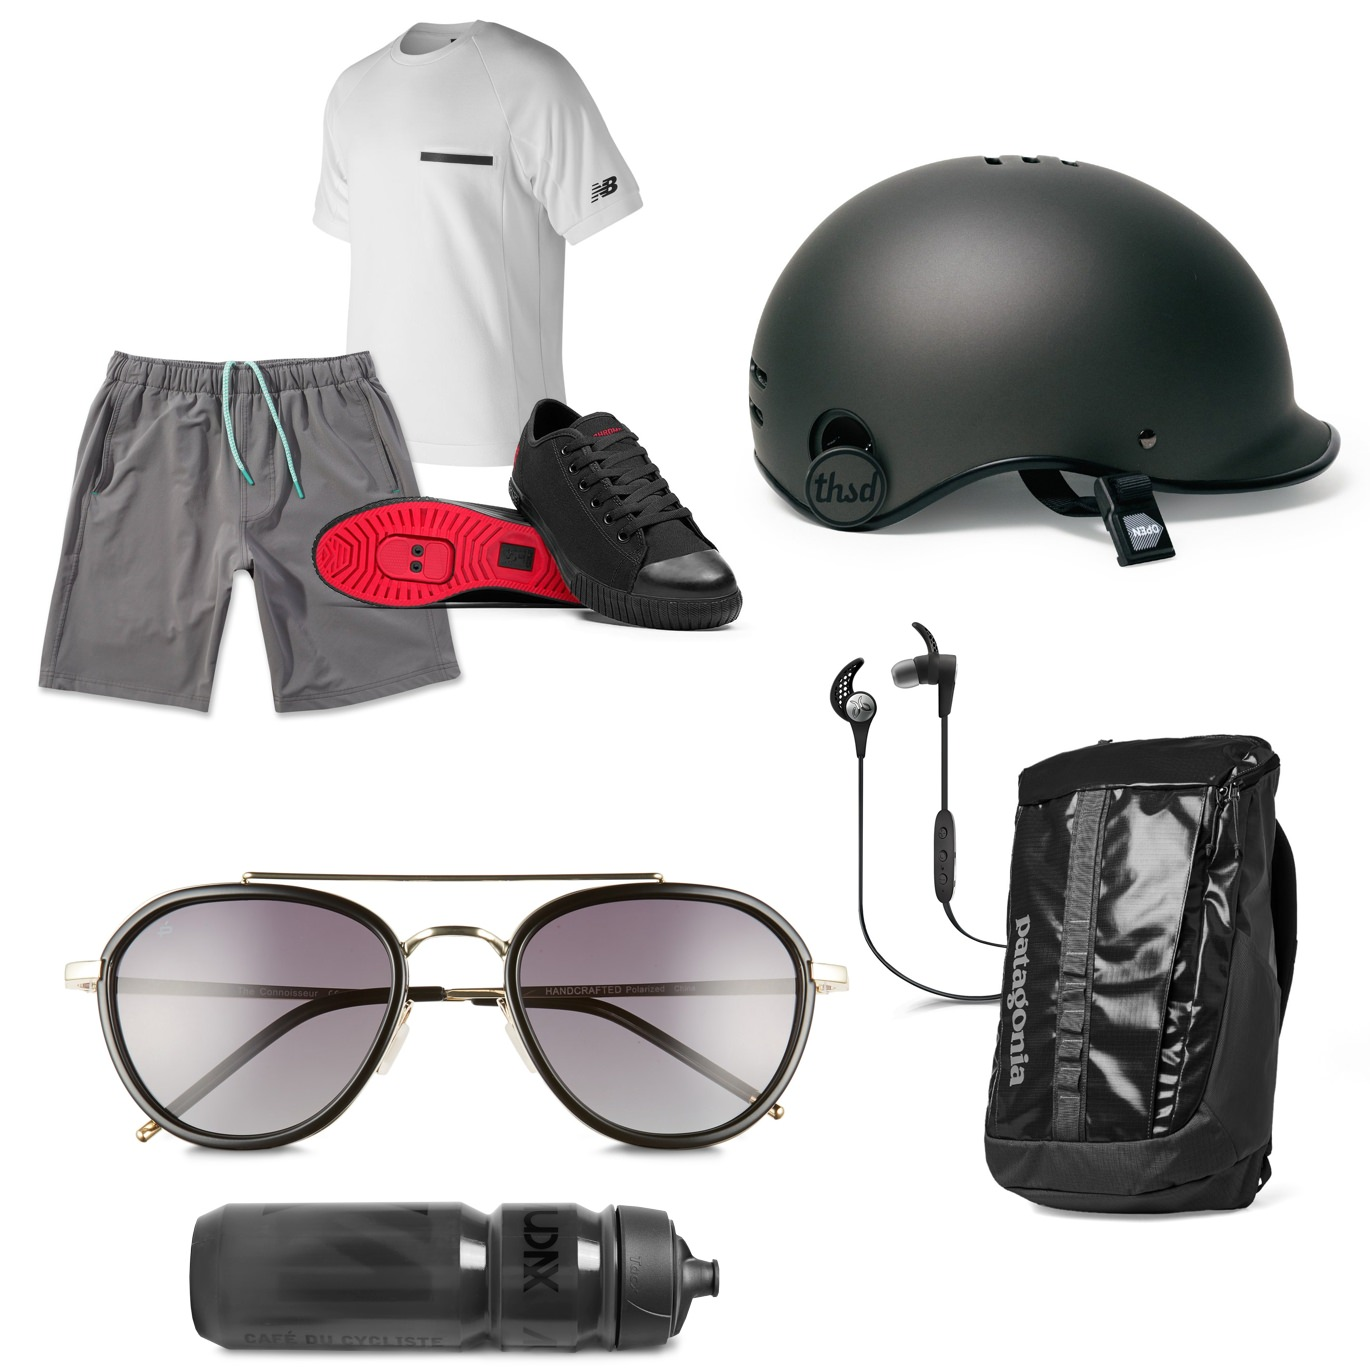 Bike cycling gear outfit inspiration